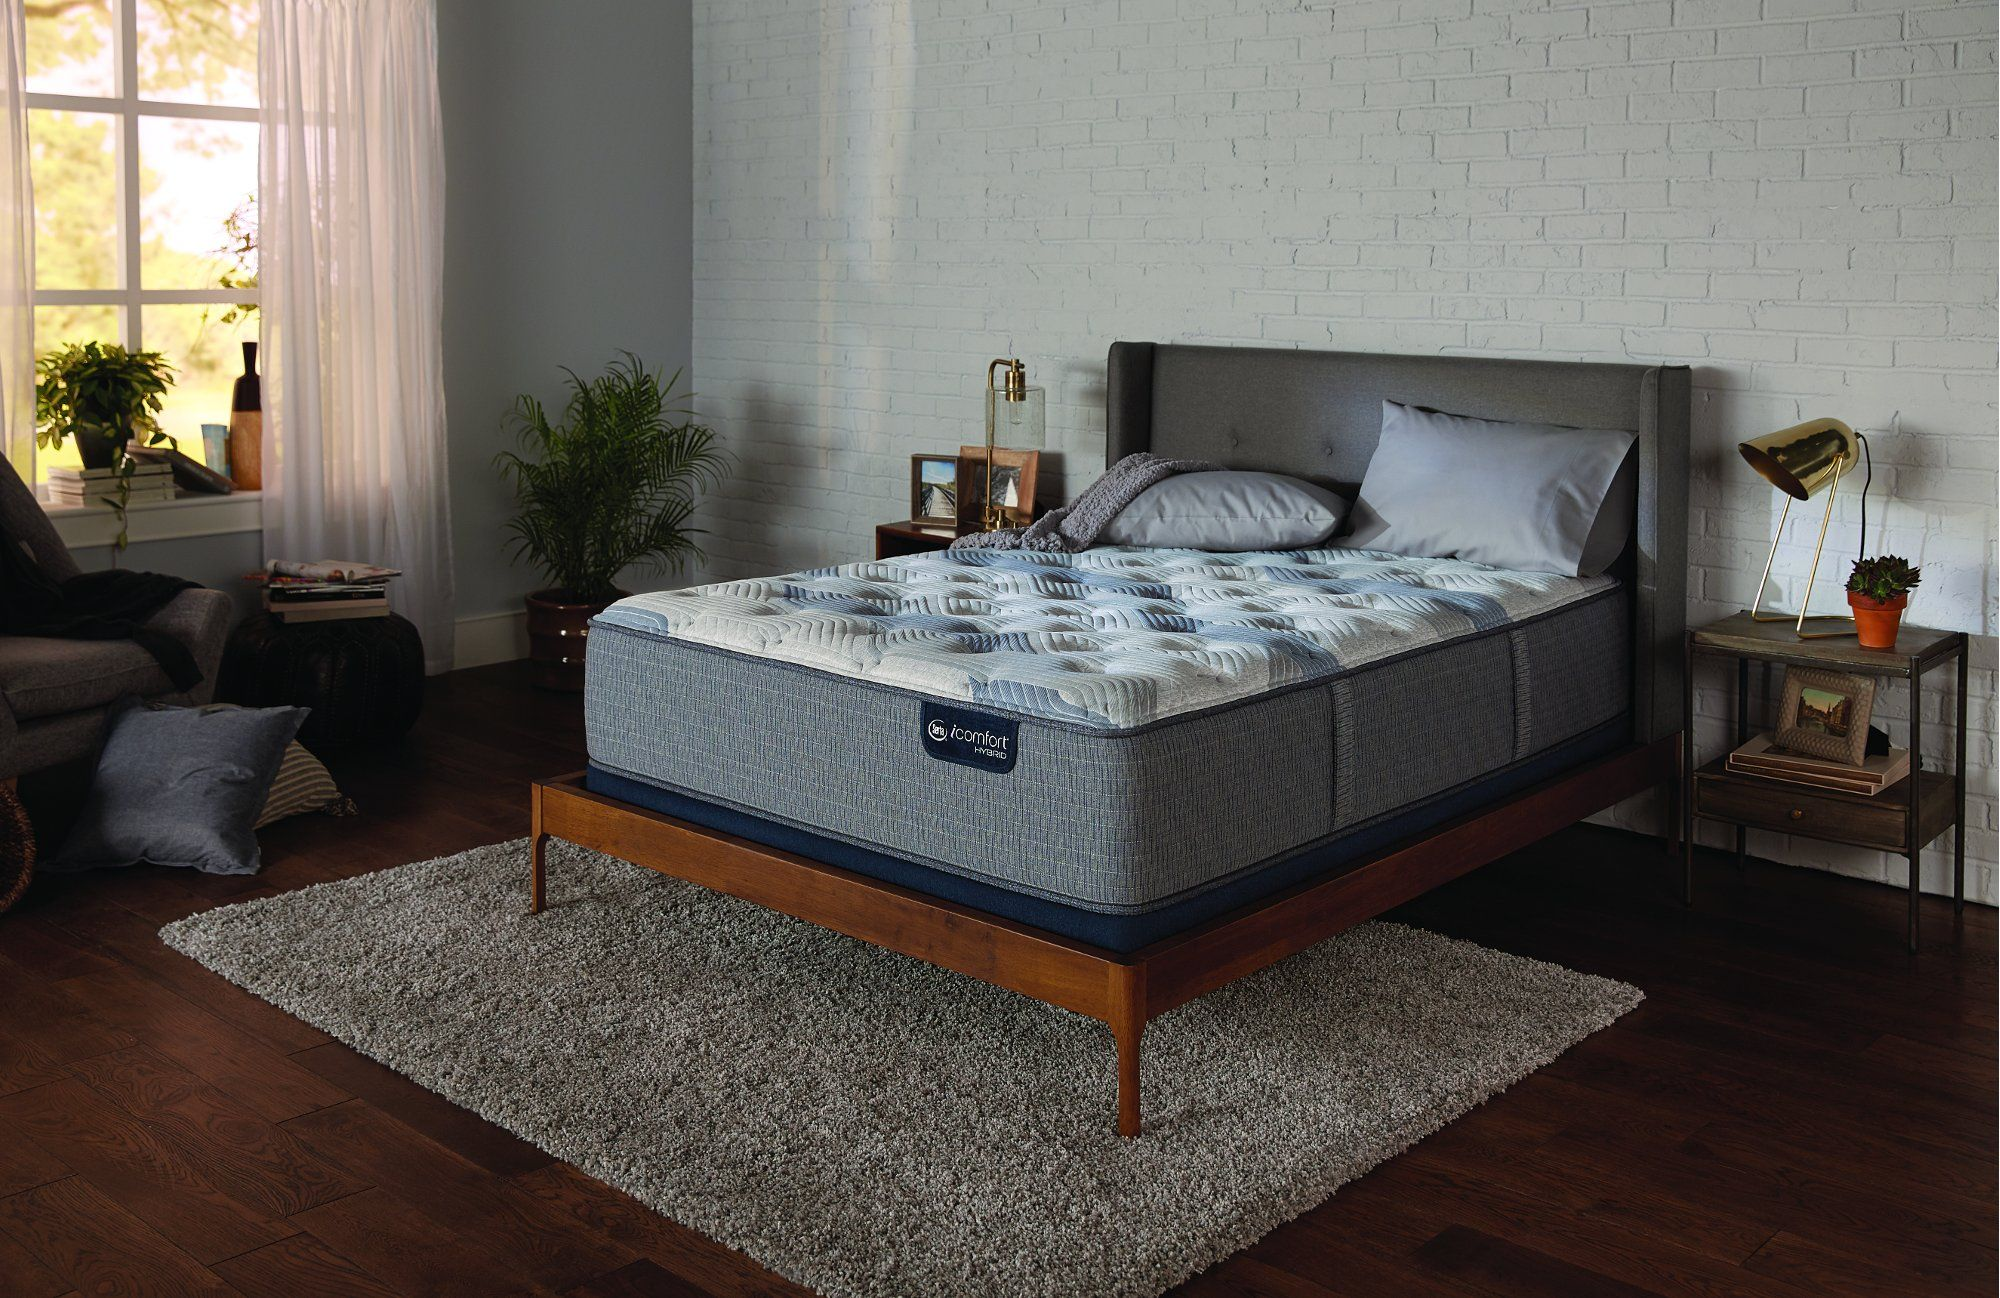 Serta 200 Plush Split California King Mattress